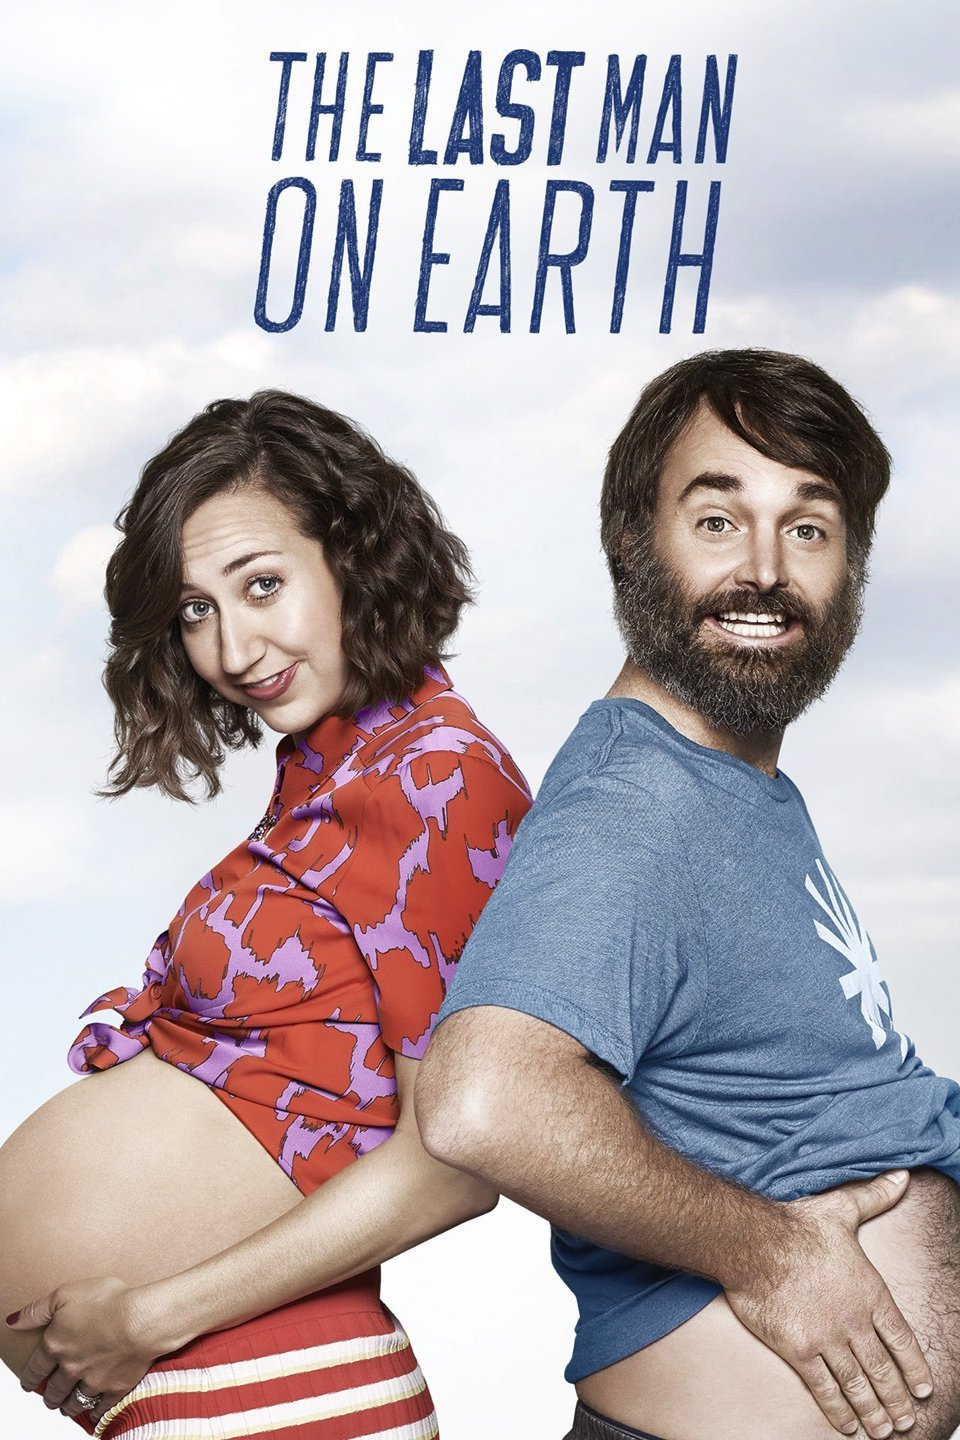 The Last Man on Earth Season 4 Episode 1 Download HDTV